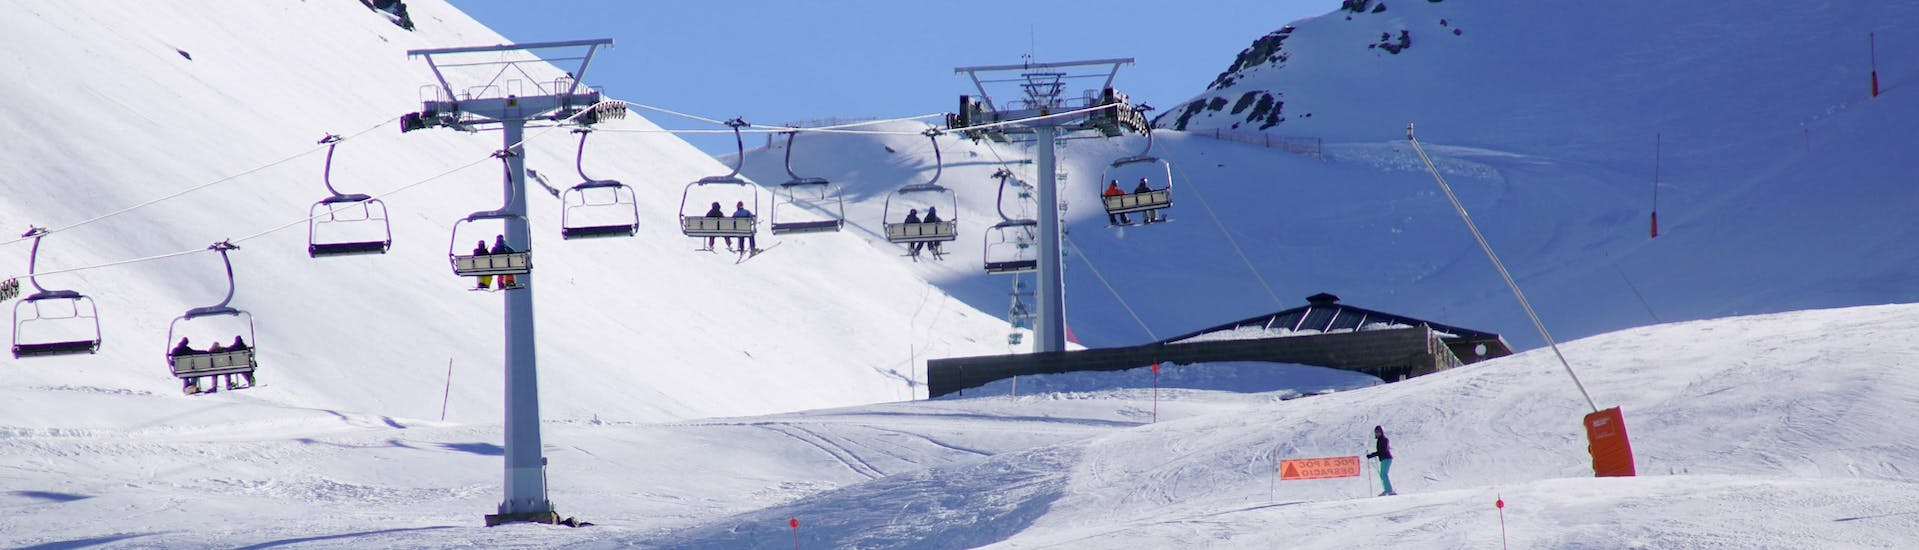 An image of one of the ski slopes in the catalan ski resort of Boí Taüll, where visitors can book ski lessons with the local ski schools.